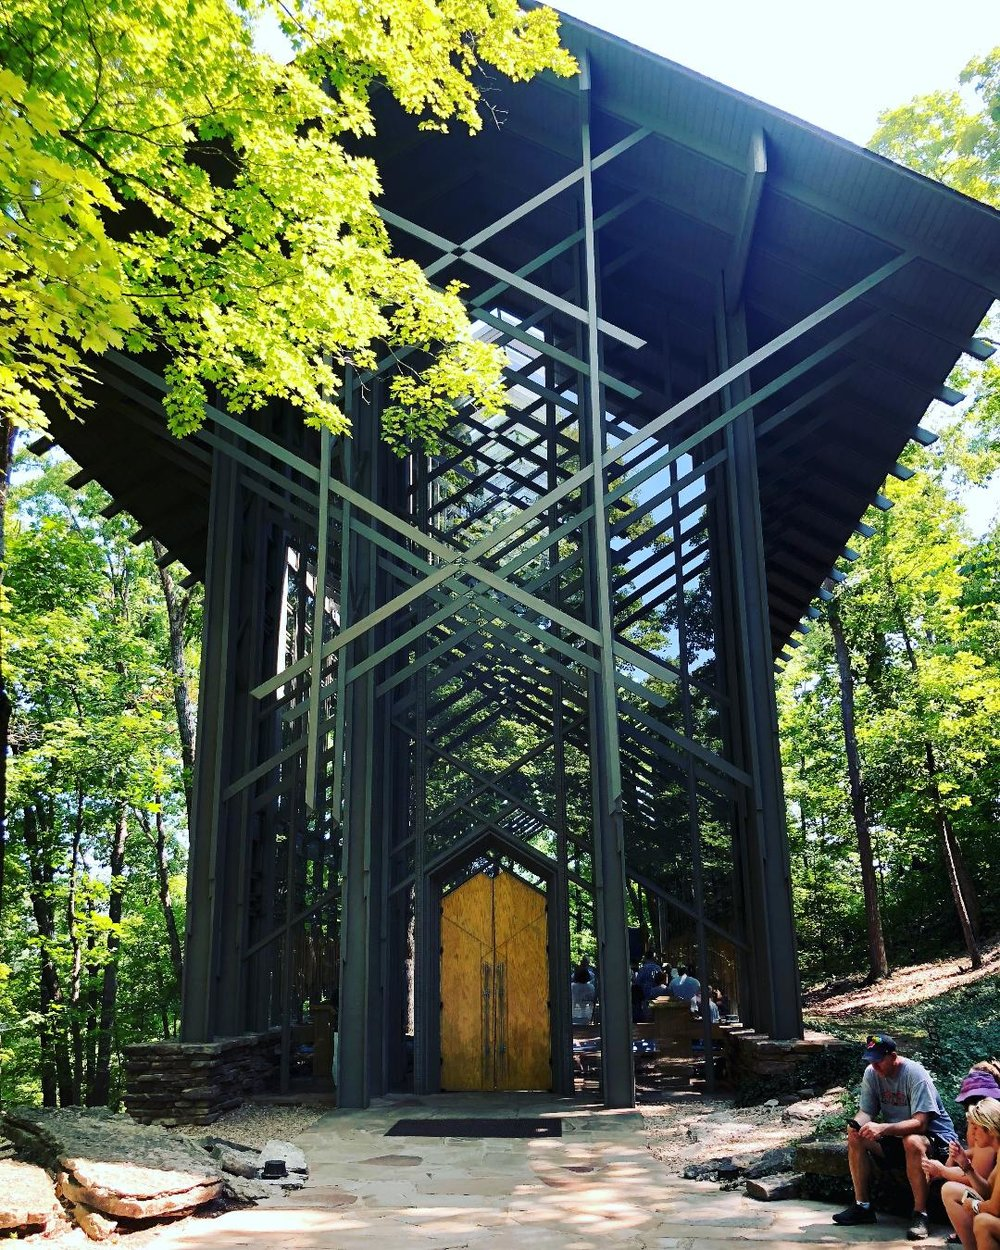 Thowncrown Chapel   We stopped at the Thorncrown Chapel on a Sunday and there was Sunday church services in progress. The 48-foot tall glass church is breathtaking and I couldn't imagine attending church services in such a majestic place.